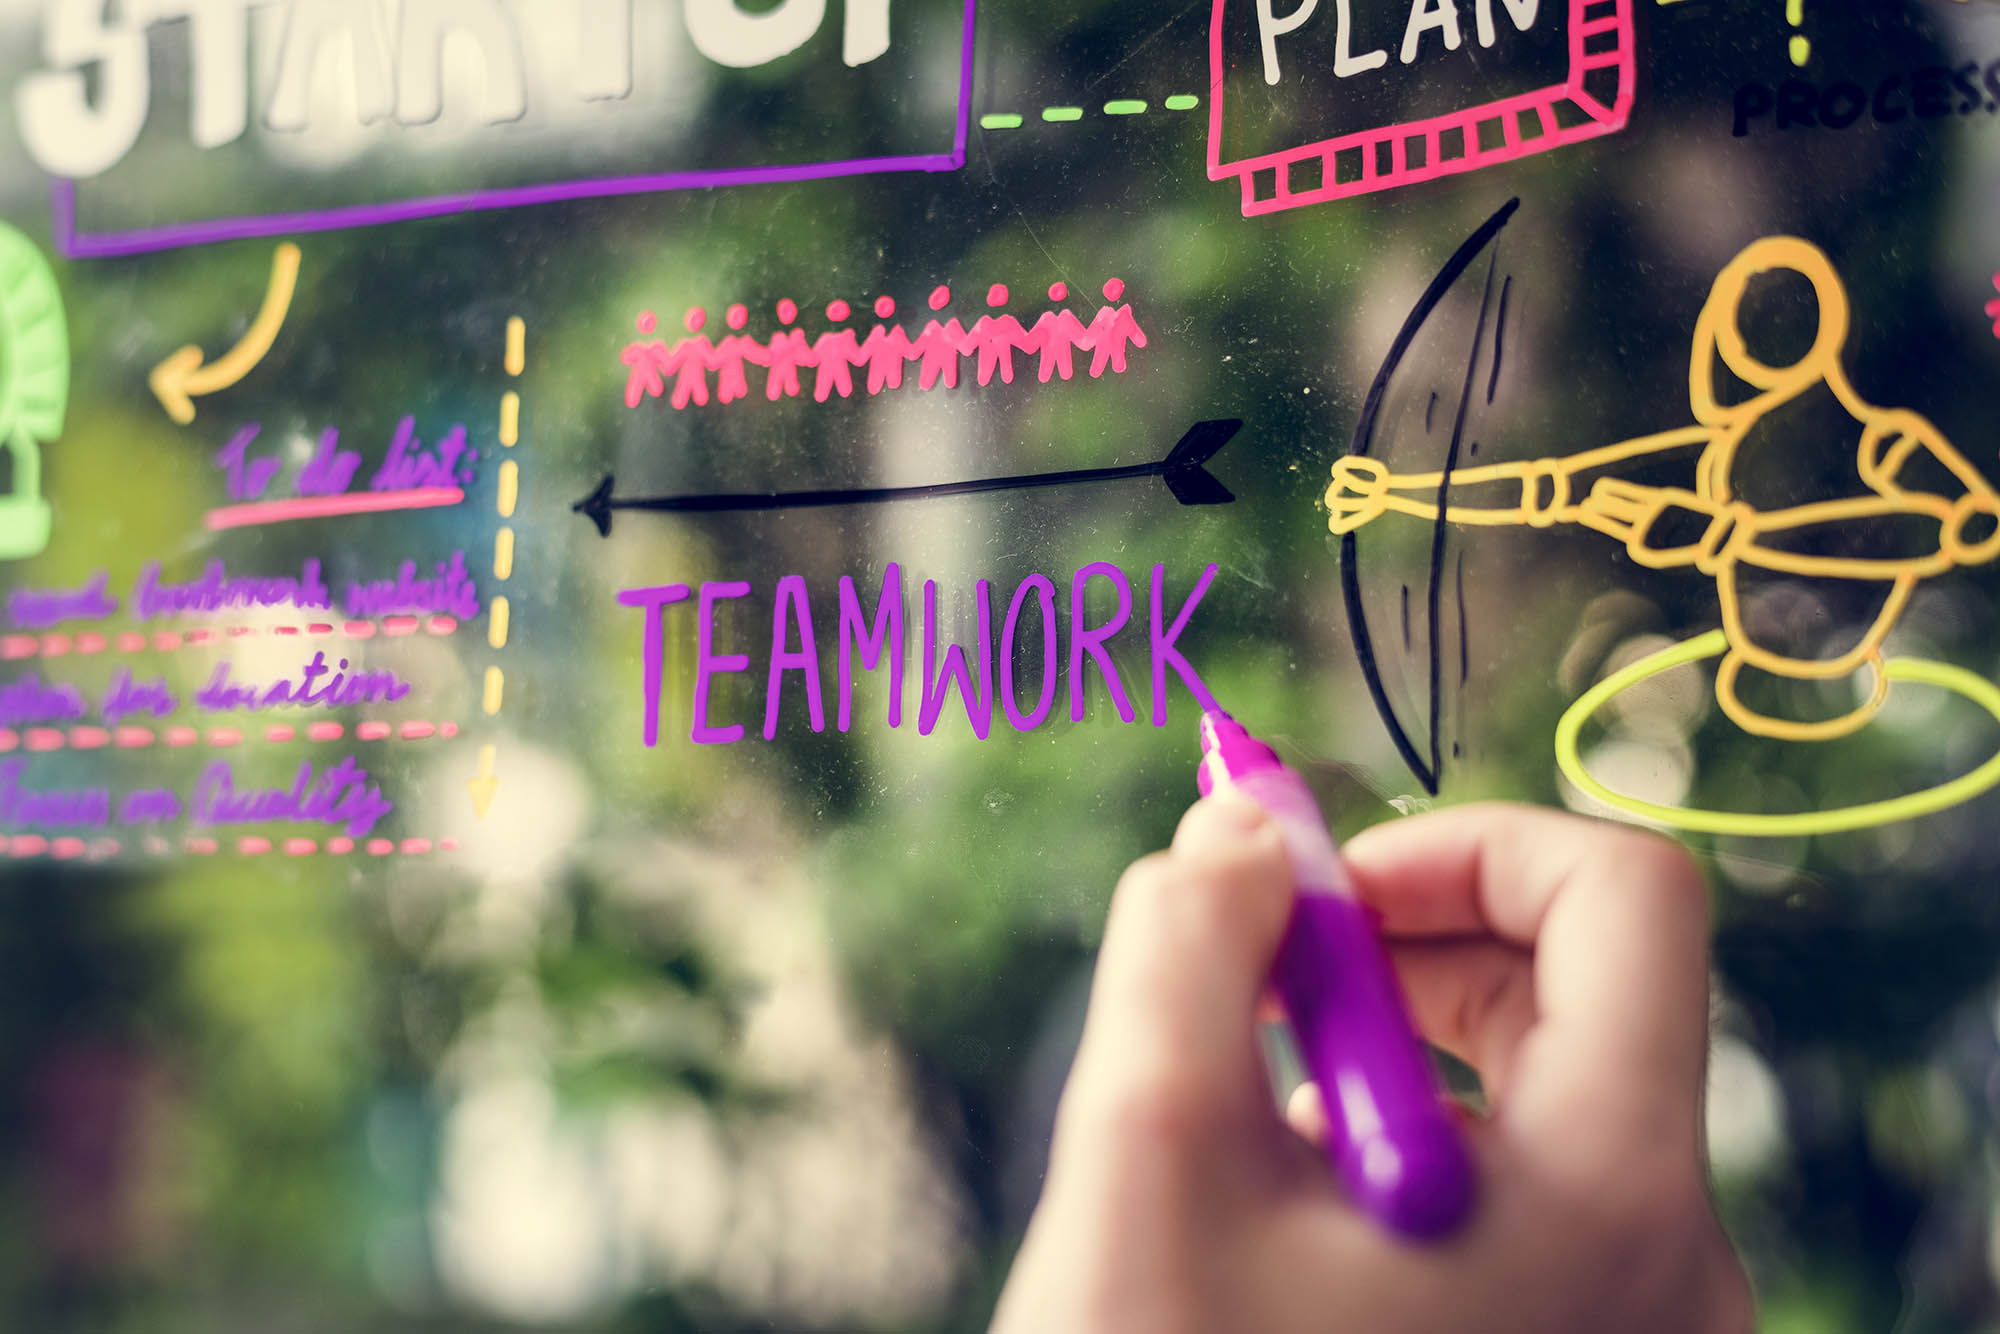 What is the missing link between employee engagement and employer branding?